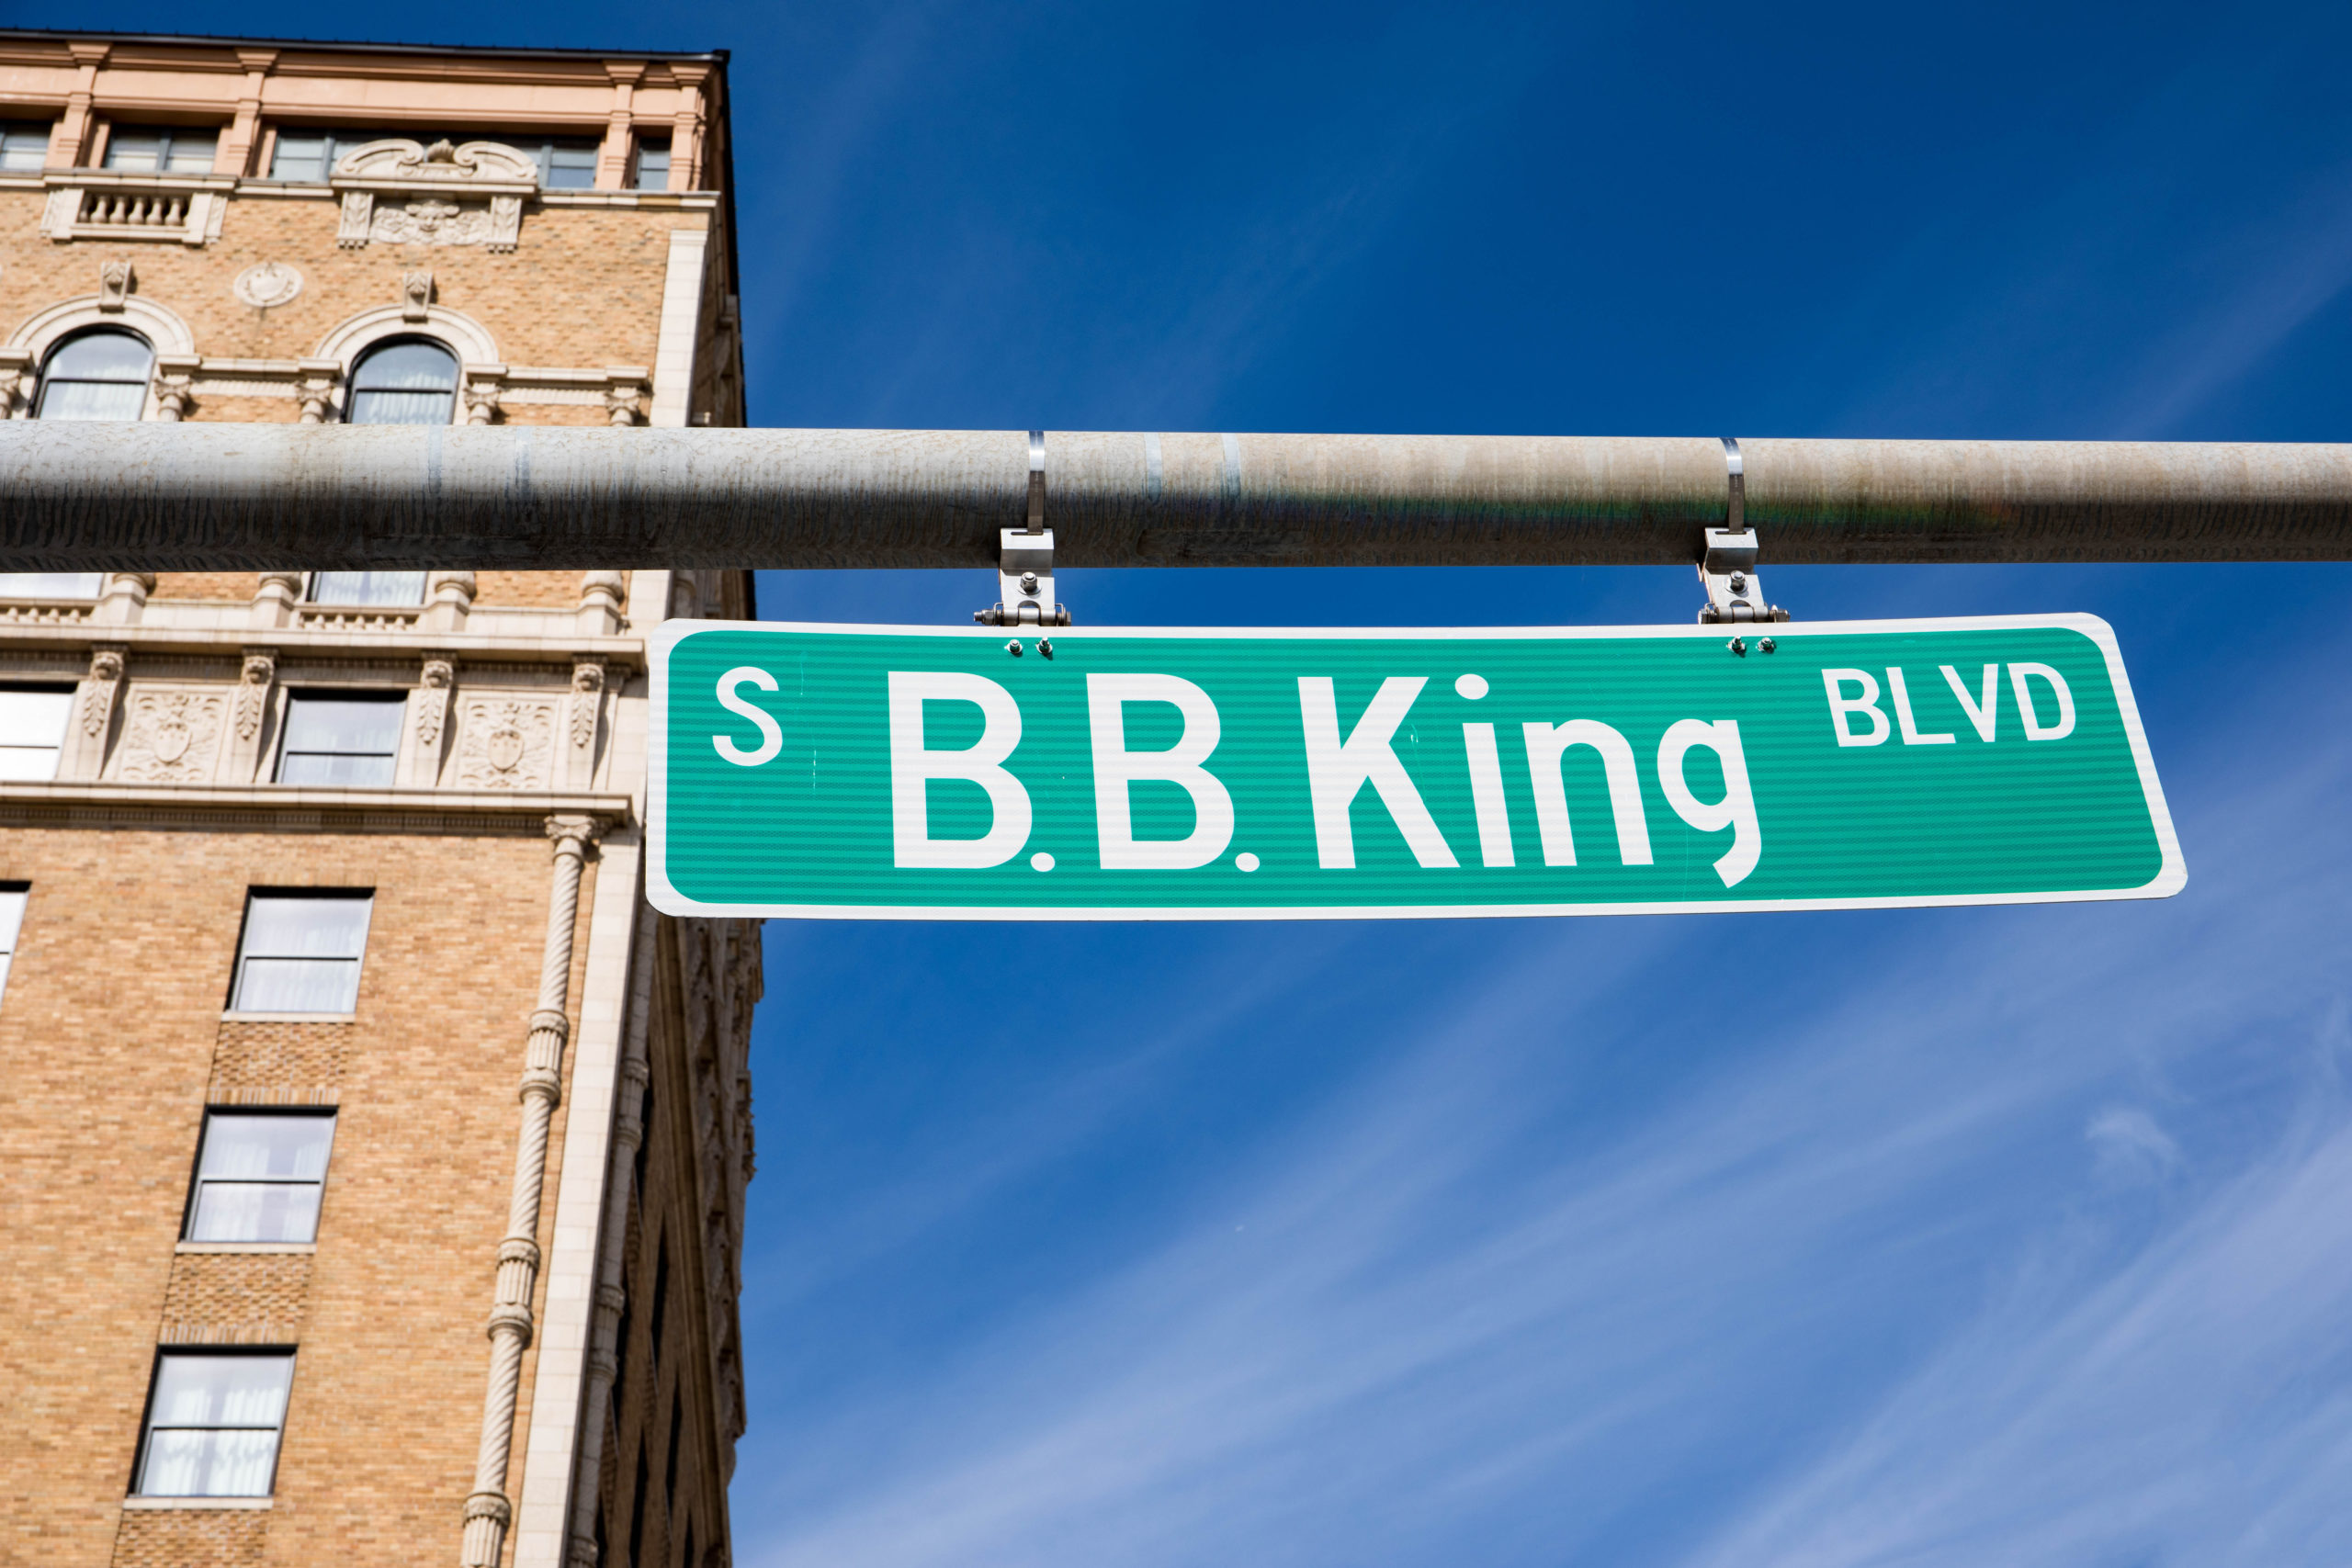 BB King sign